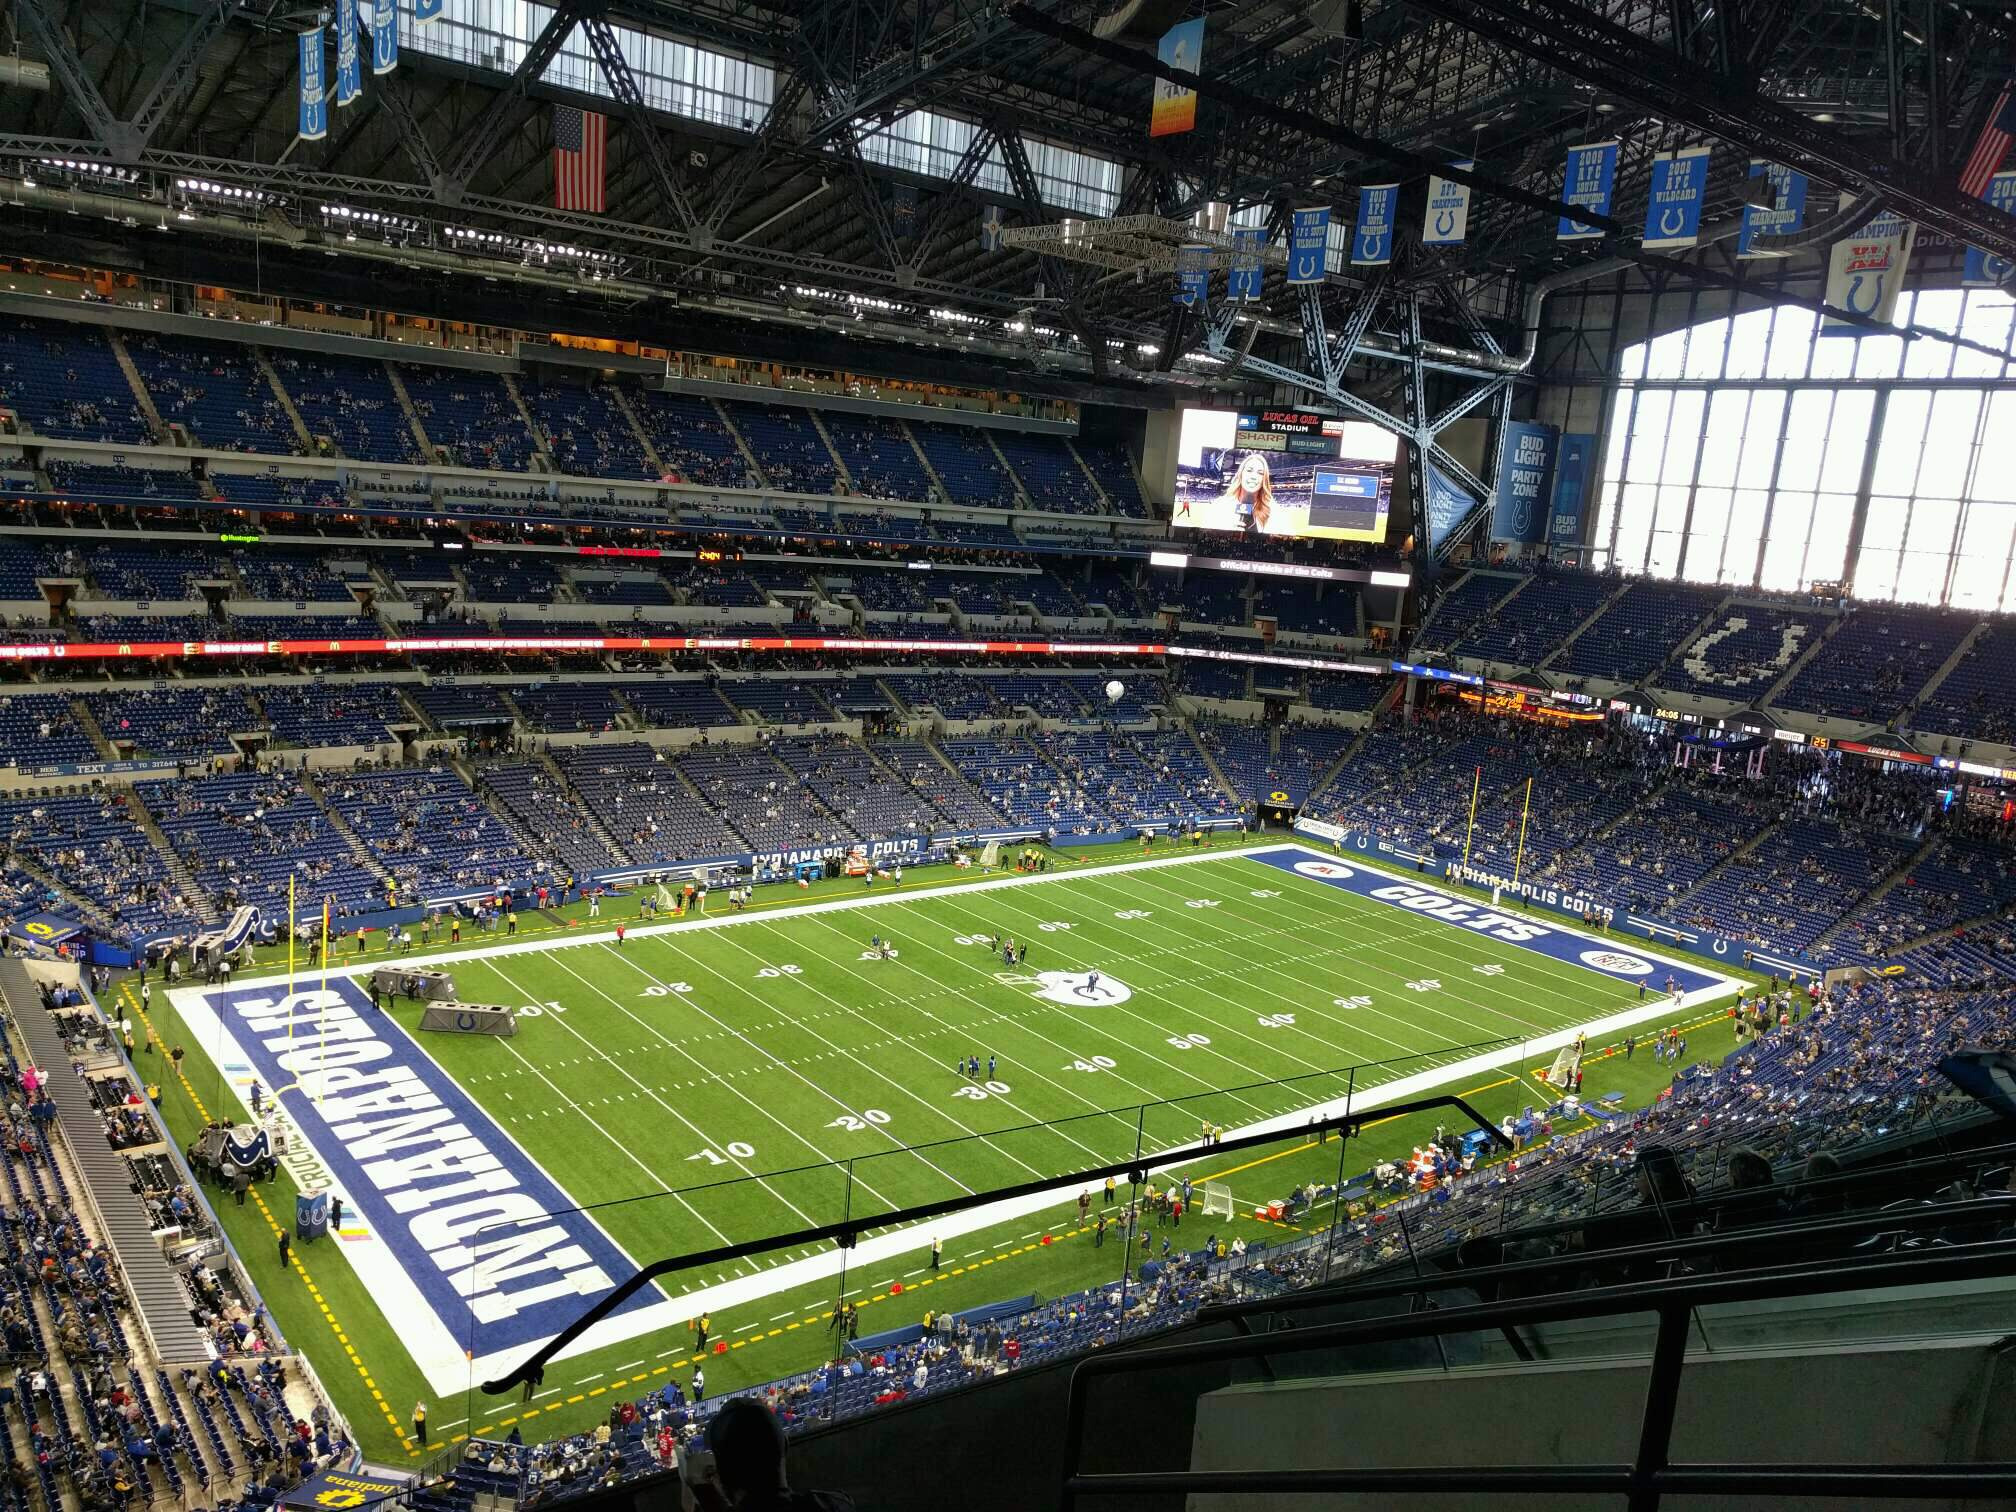 Lucas Oil Stadium Section 619 Row 6 Seat 4